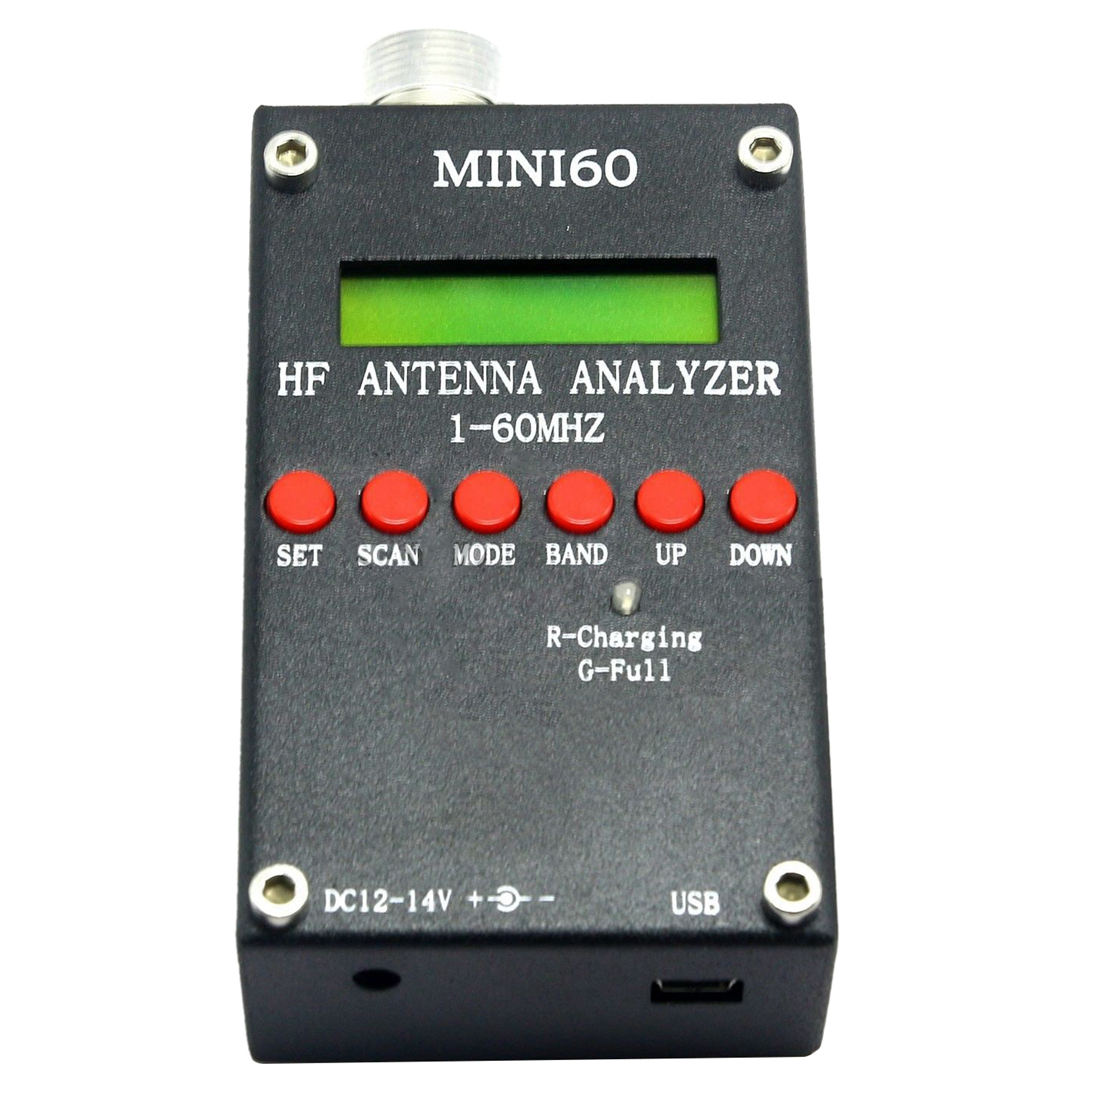 Mini60 Sark100 HF ANT SWR Antenna Analyzer Meter Bluetooth Android APP Nero